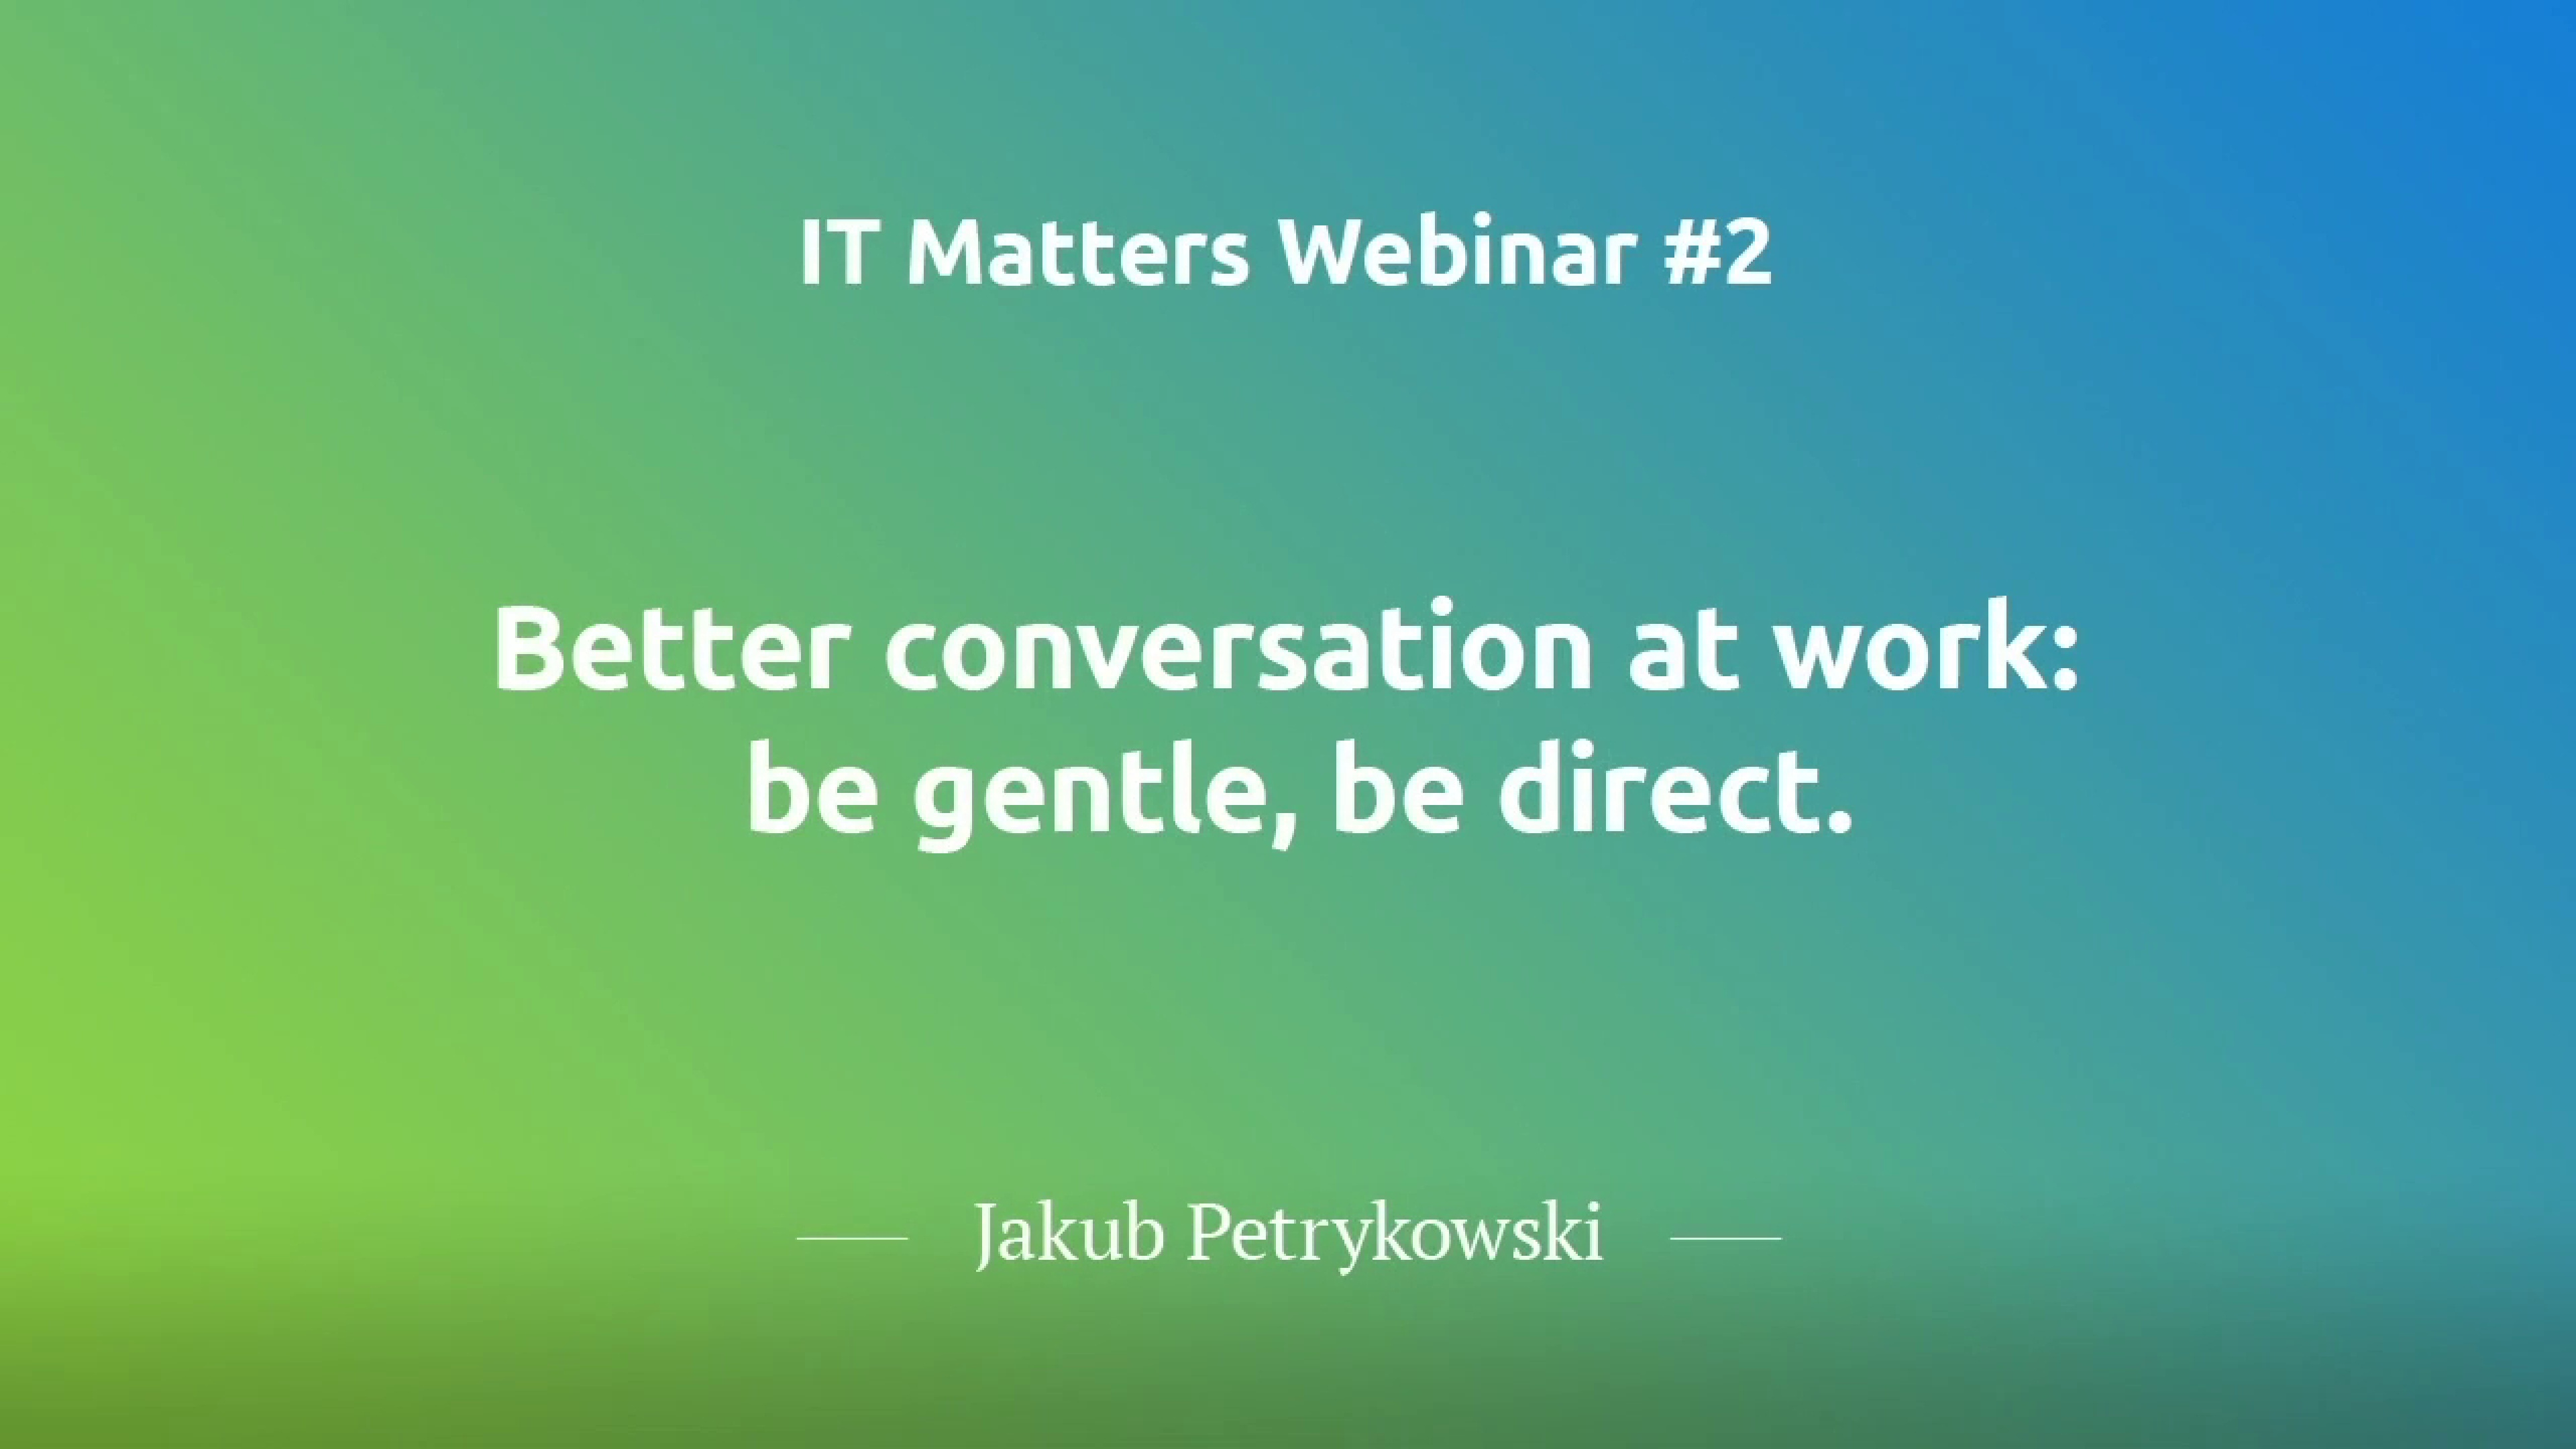 Better Conversations at Work: Be Gentle, Be Direct  - Jakub Petrykowski